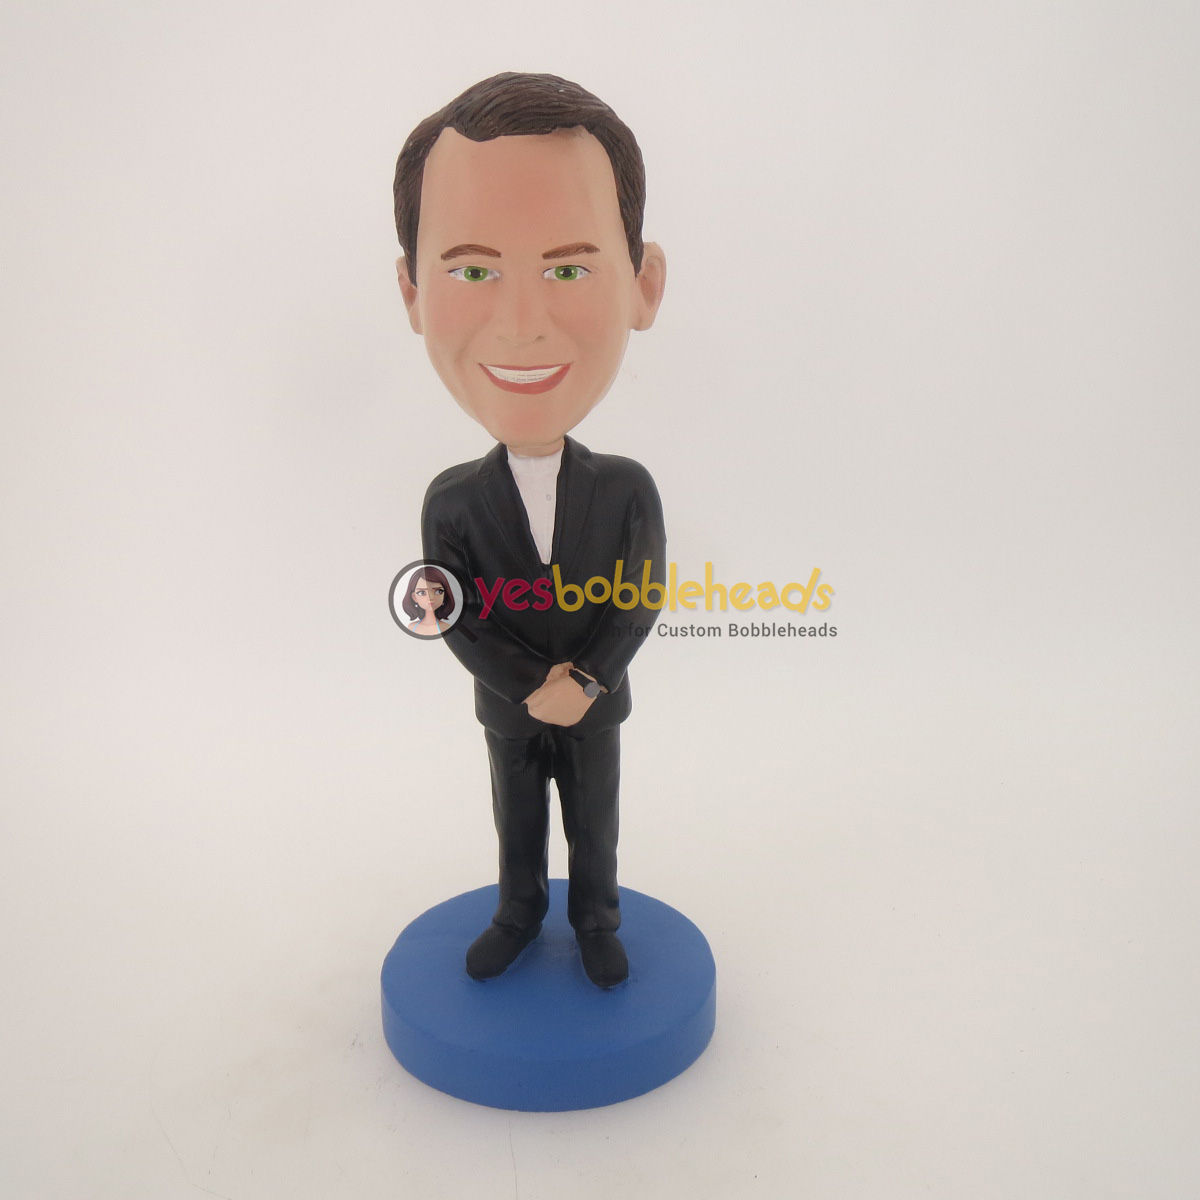 Picture of Custom Bobblehead Doll: Smiling Man In Black Suit